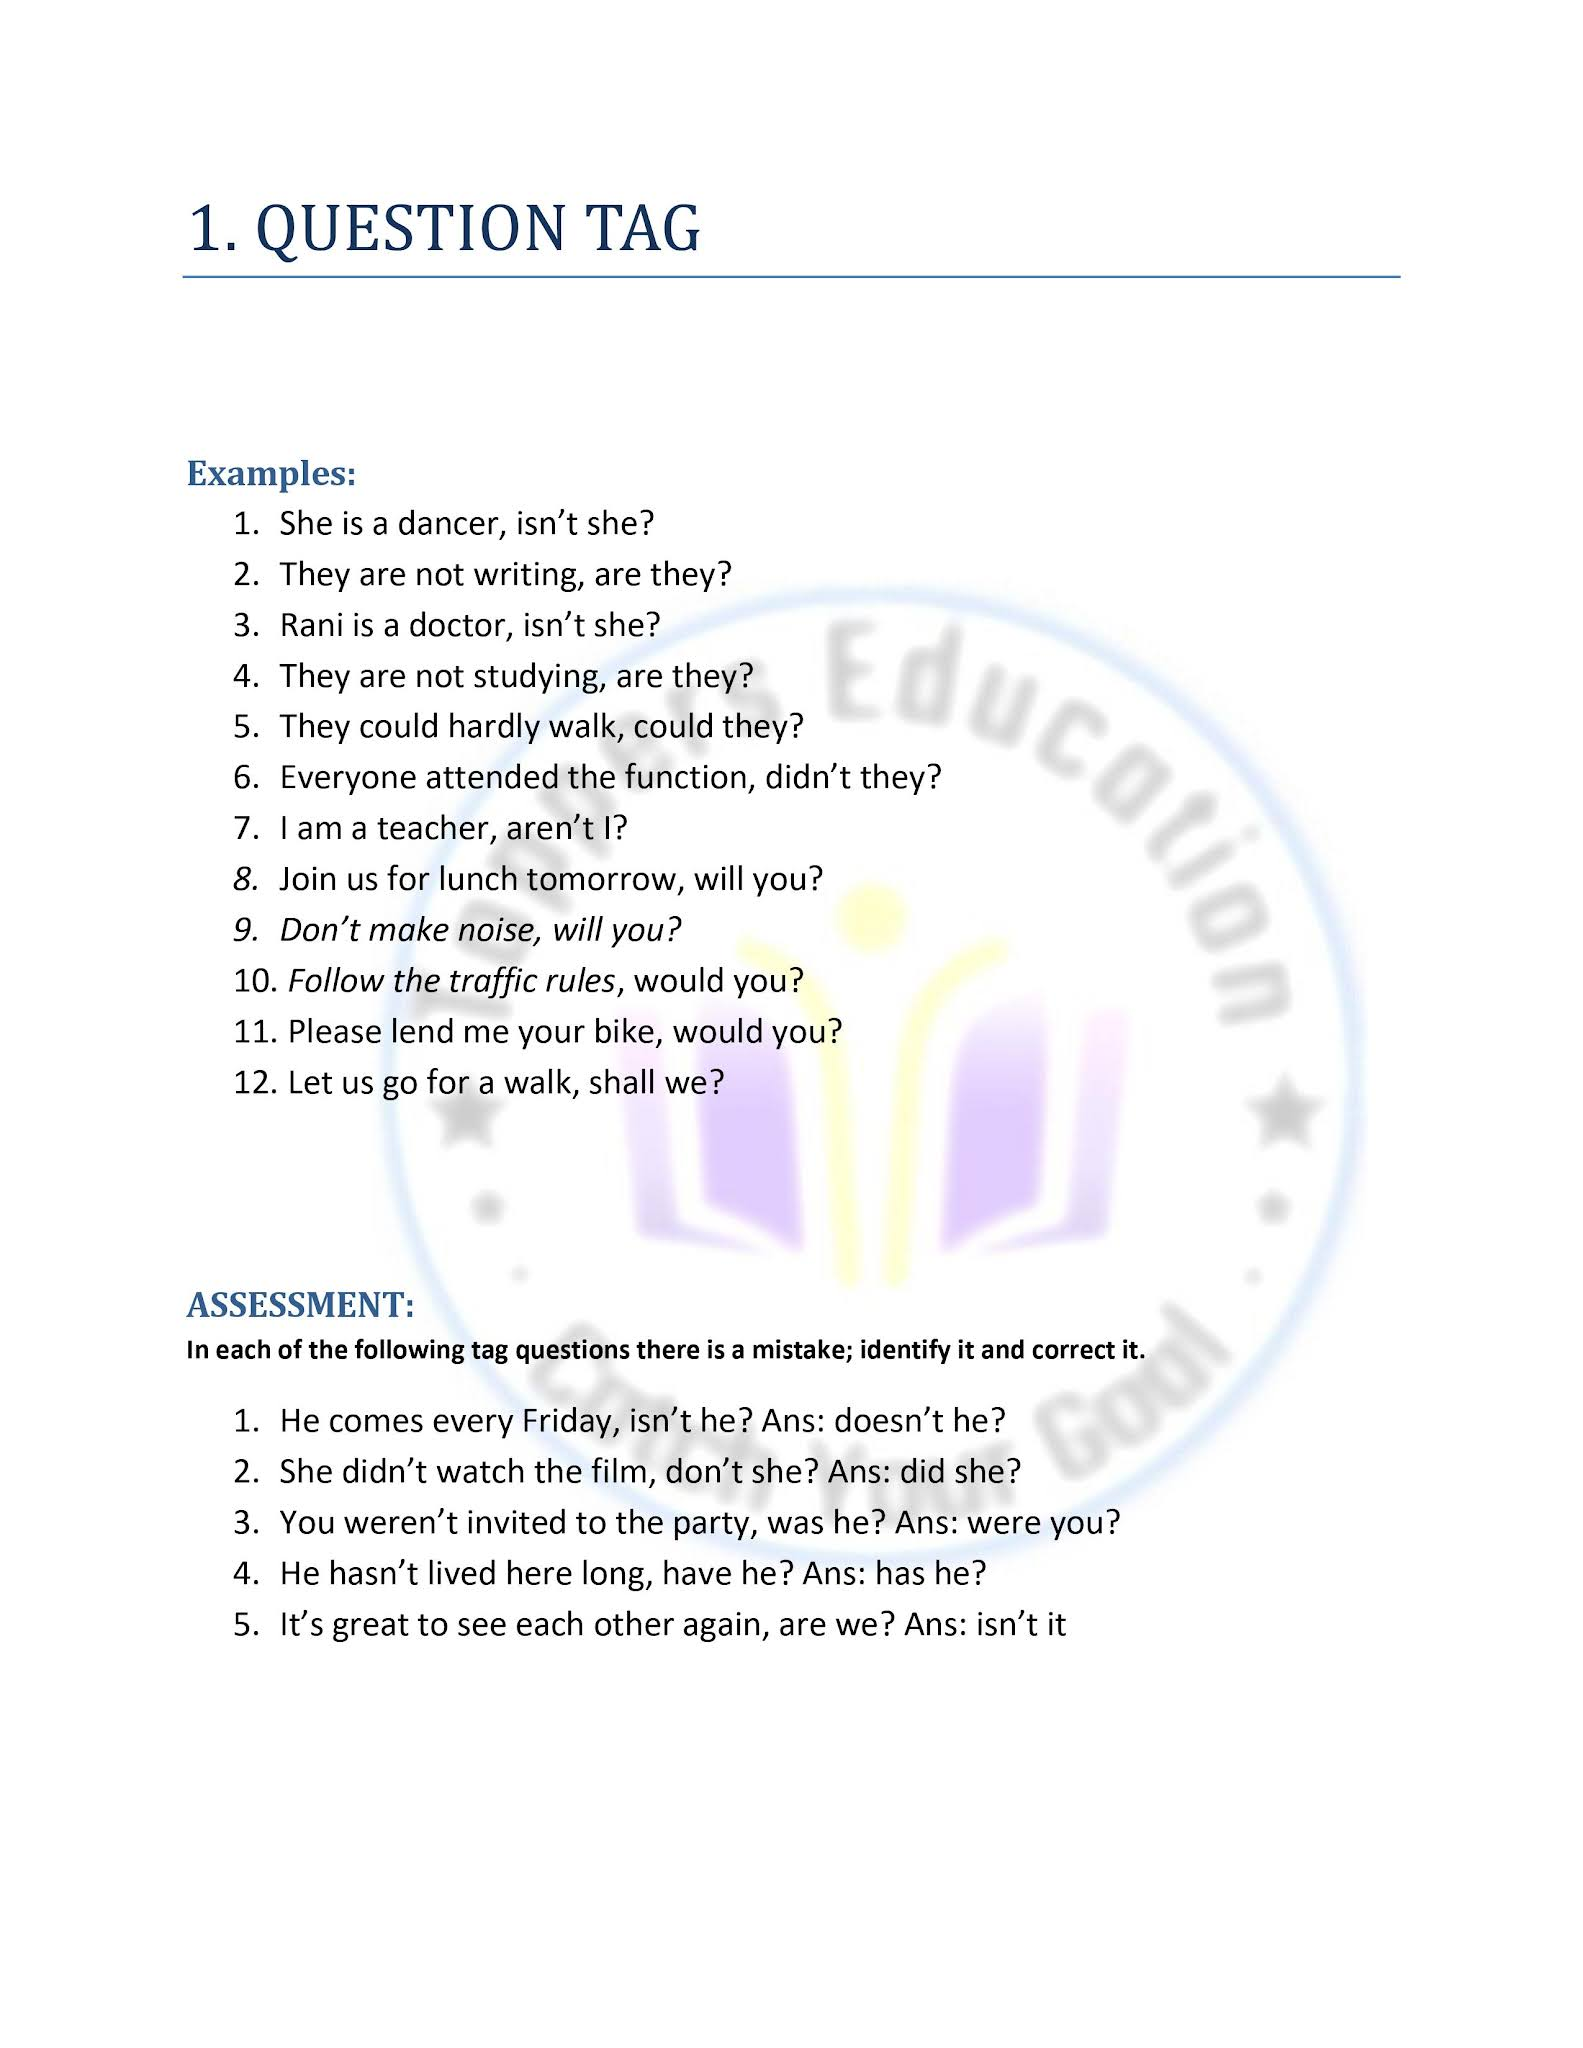 12th English Refresher Course Answer key Question tag